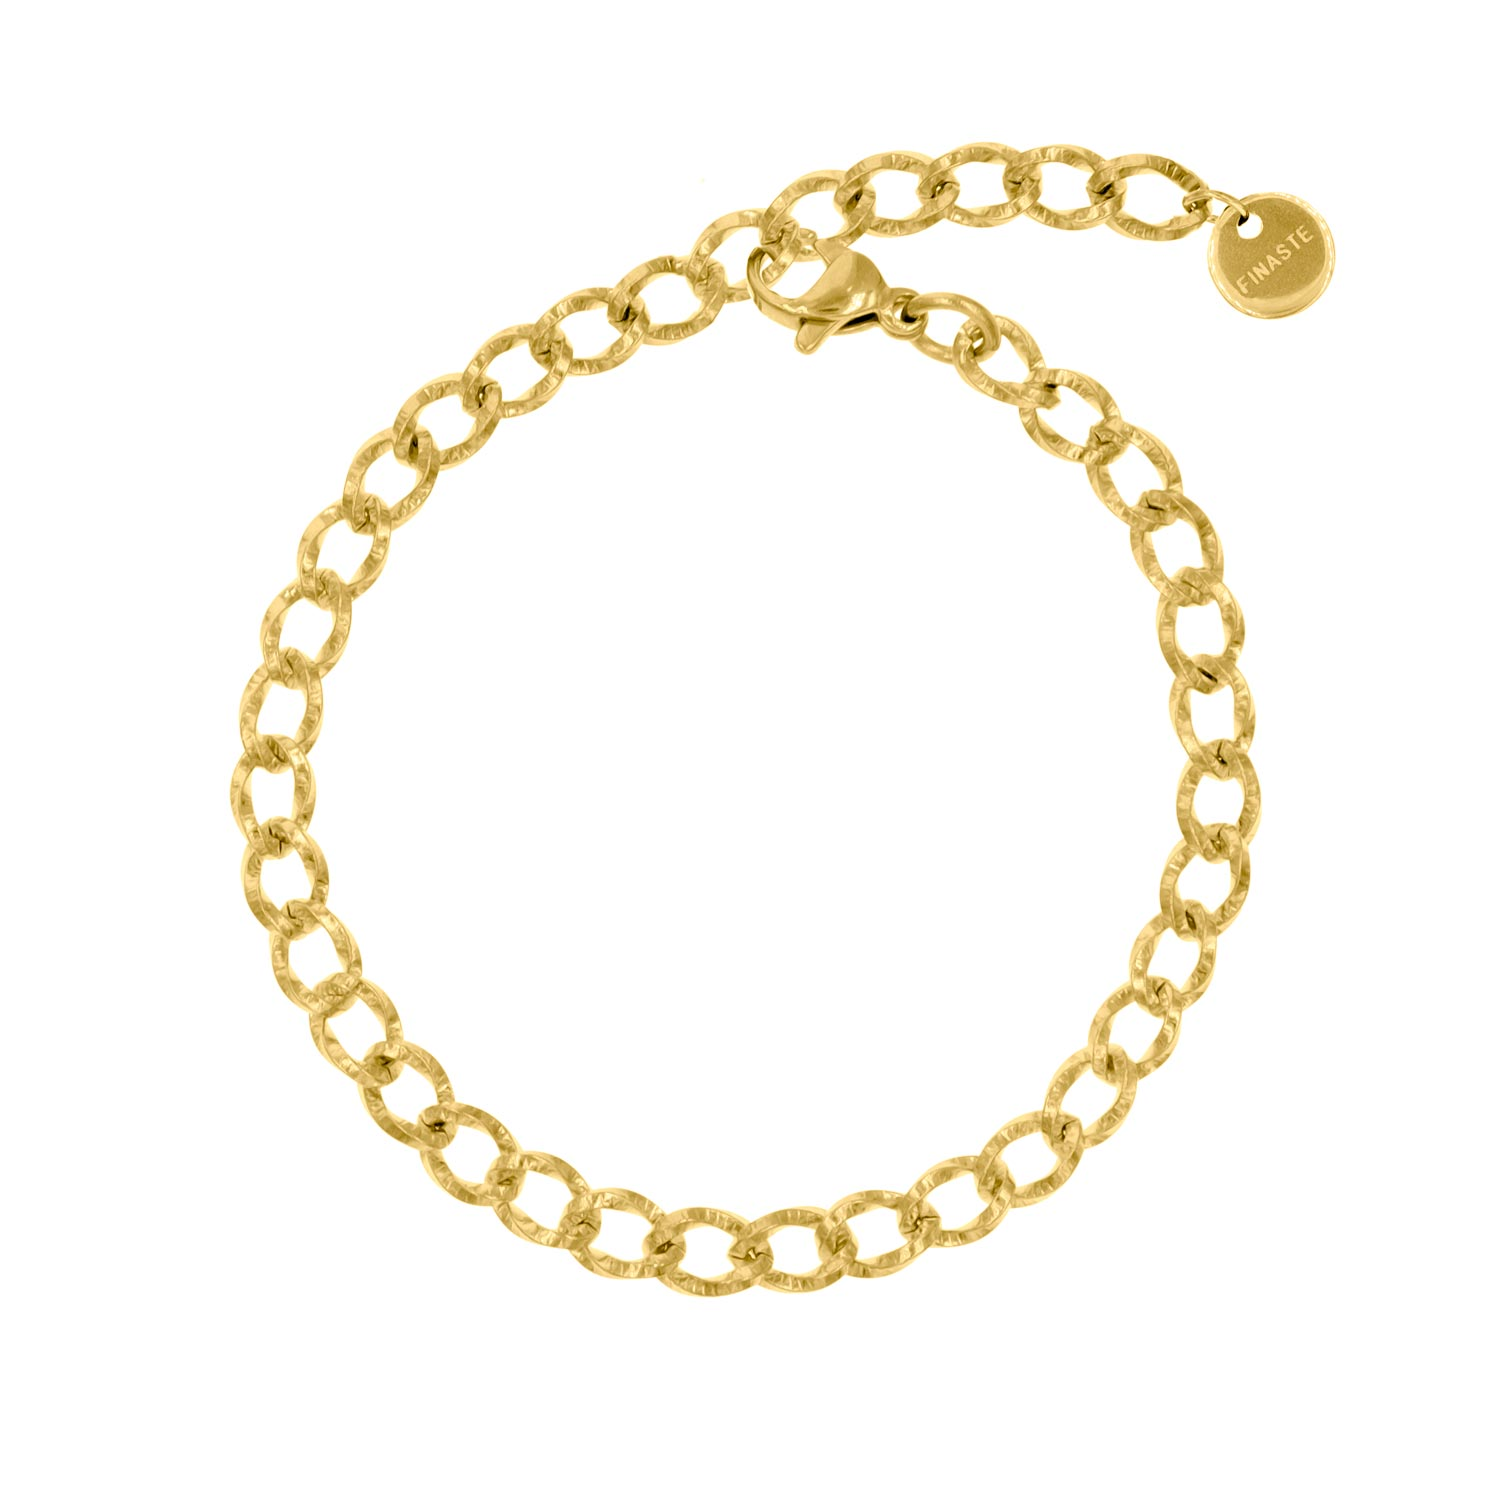 Gouden armband met chains